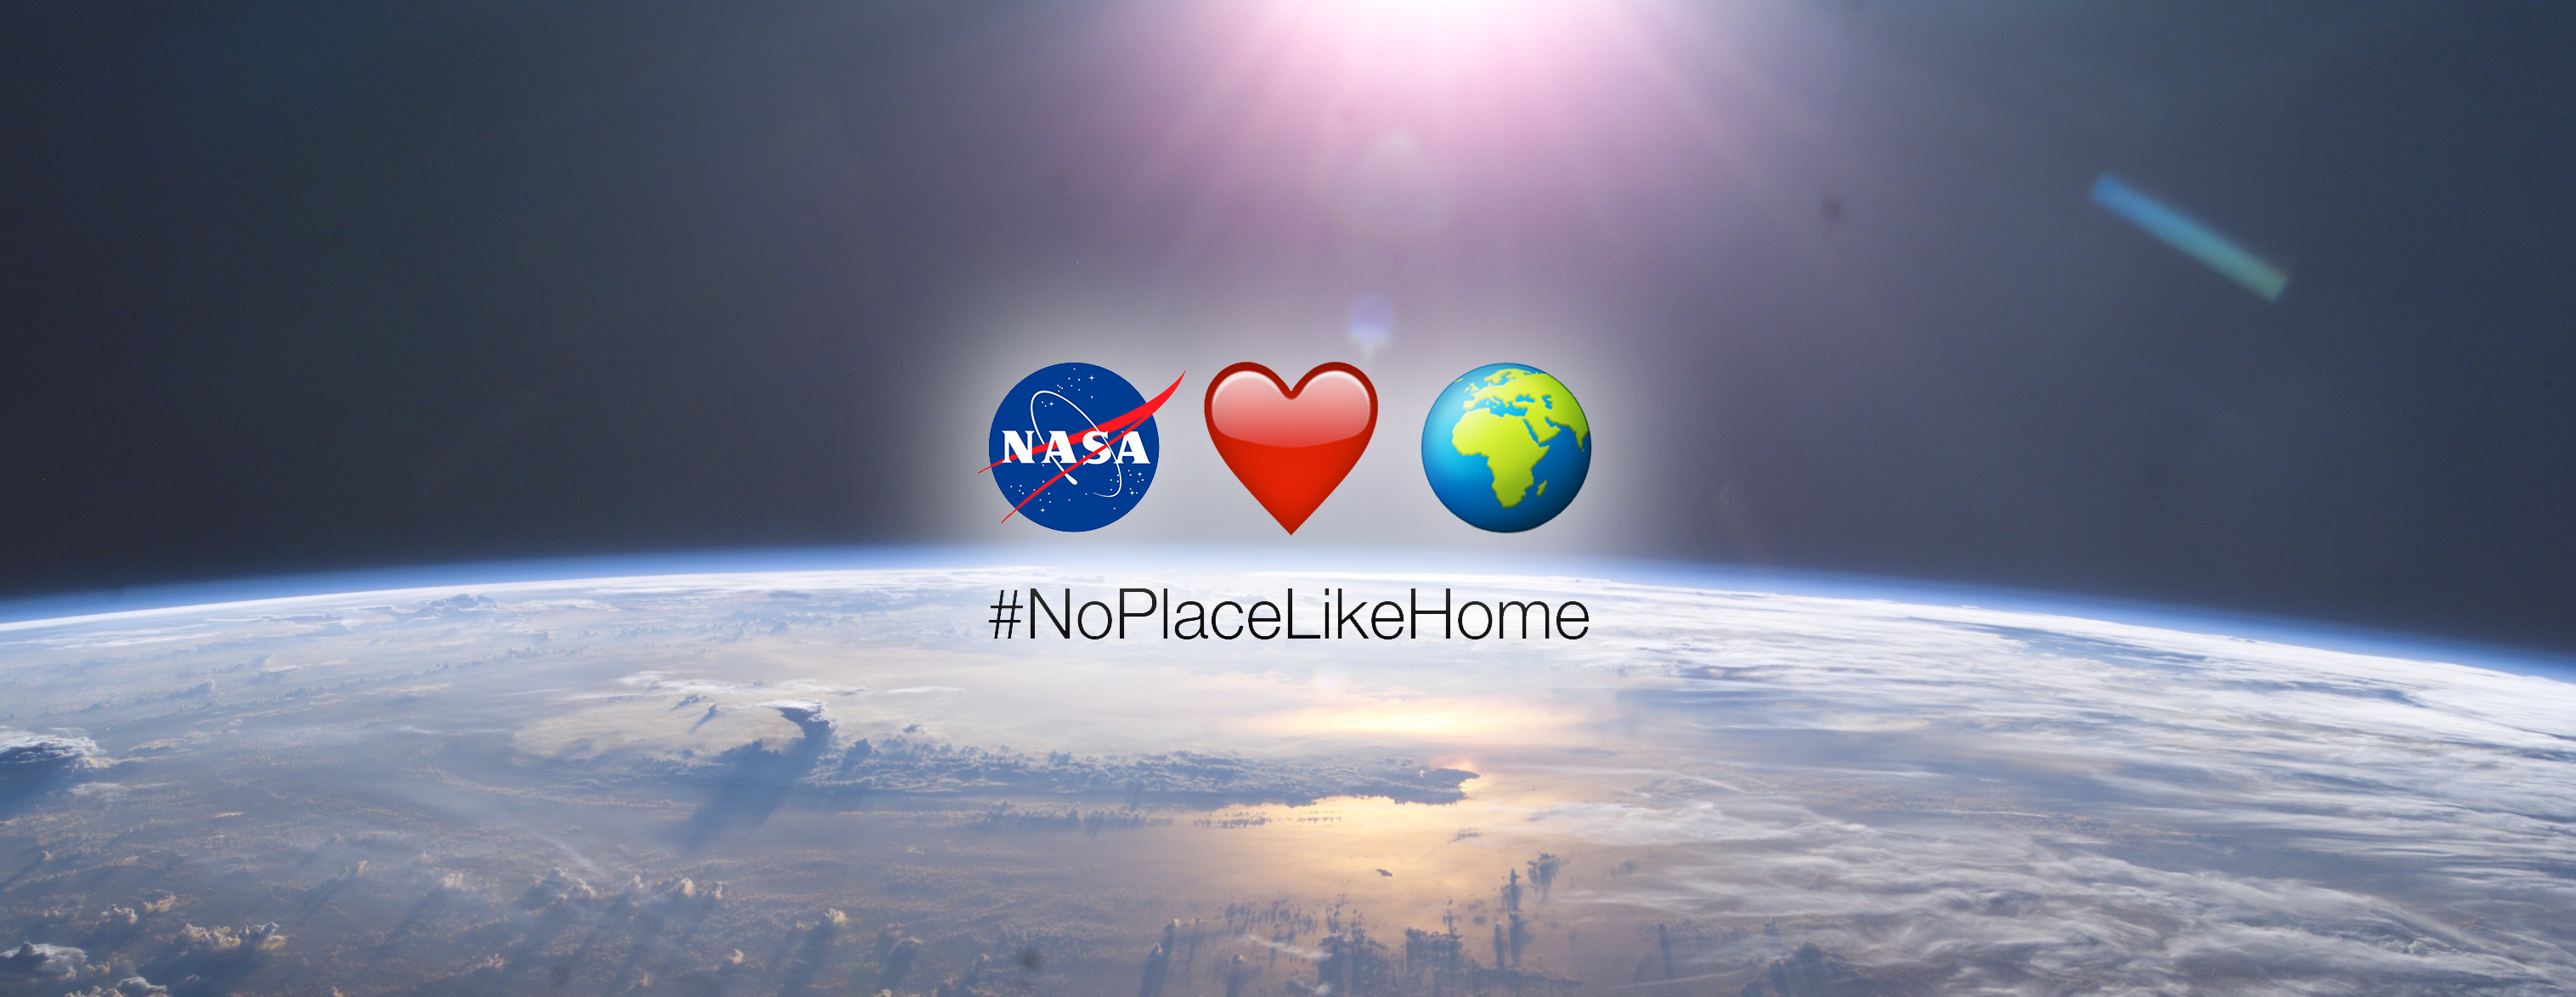 On Earth Day, Show NASA How There's #NoPlaceLikeHome